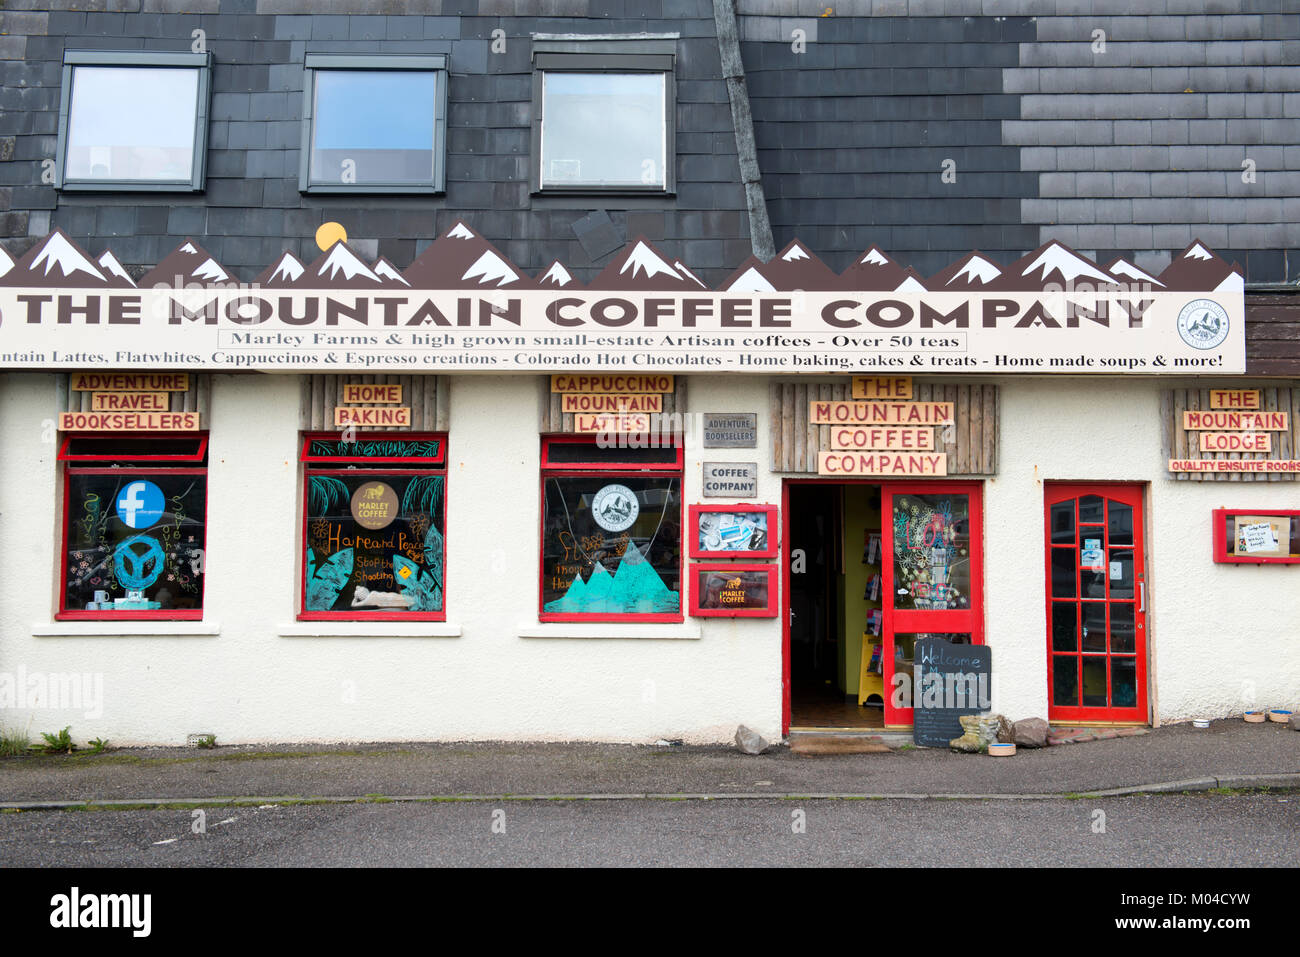 The Mountain Coffee Company coffee shop in Gairloch, Wester Ross, Scotland - Stock Image